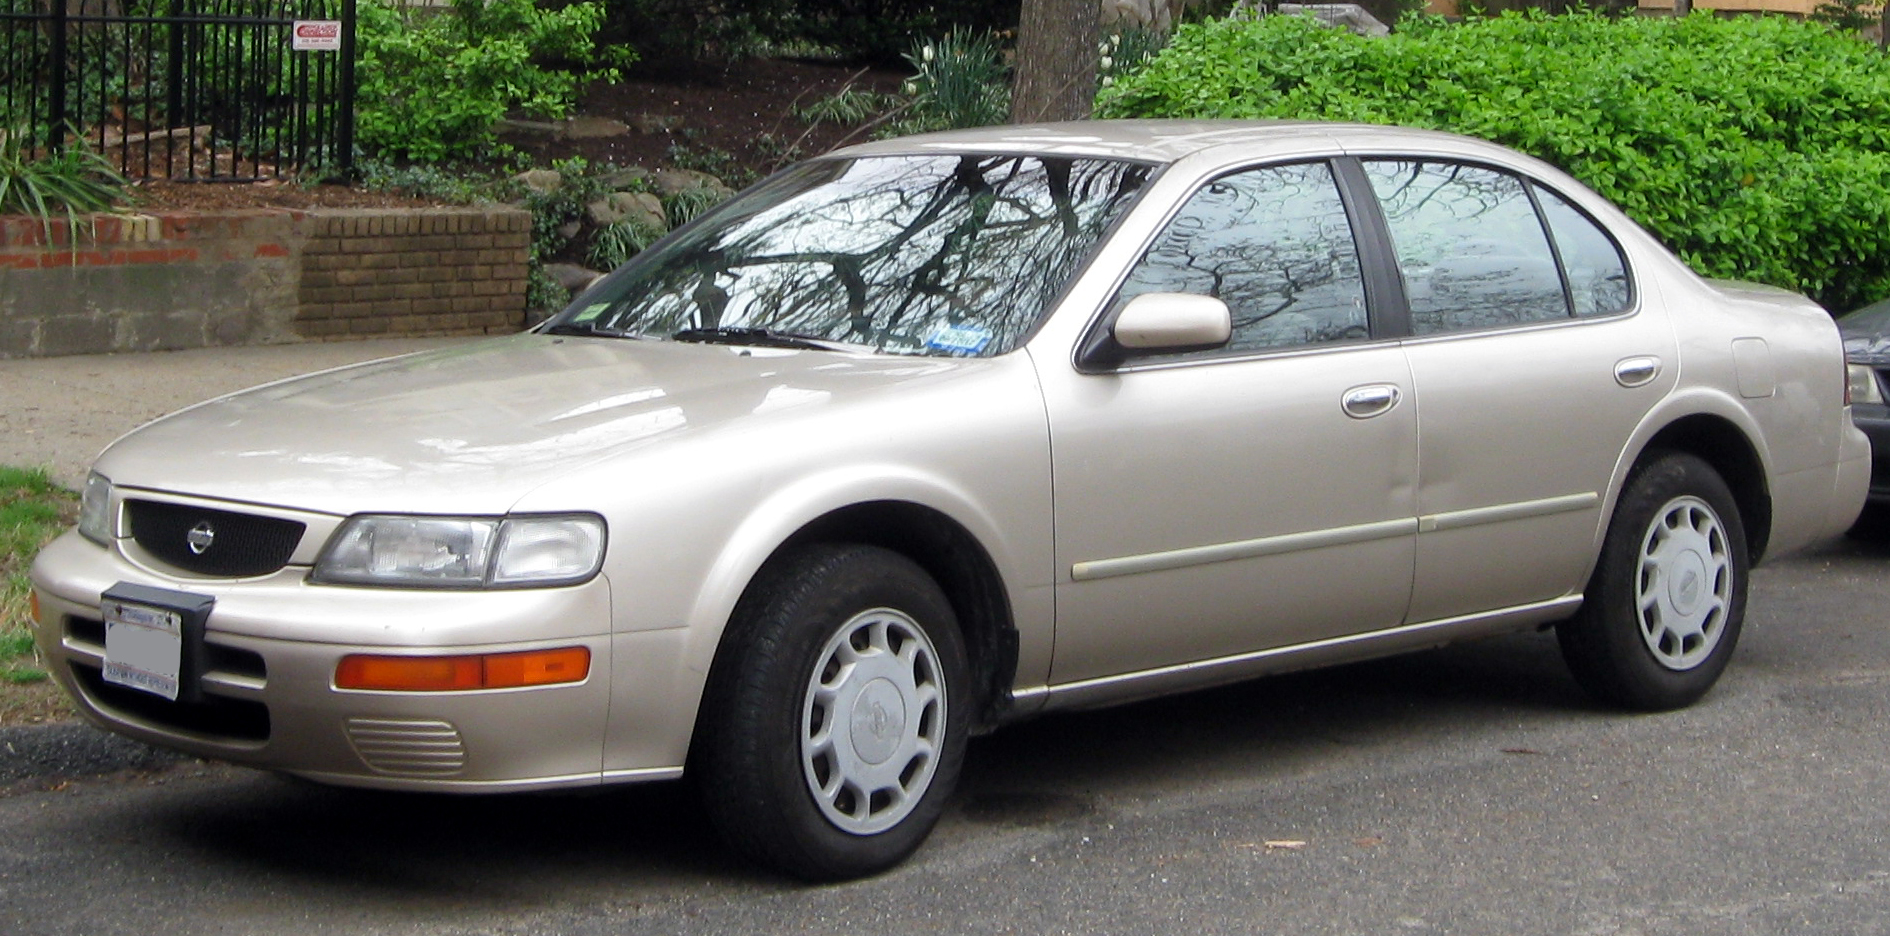 Nissan Restored The 1996 Maxima That They Bought After The